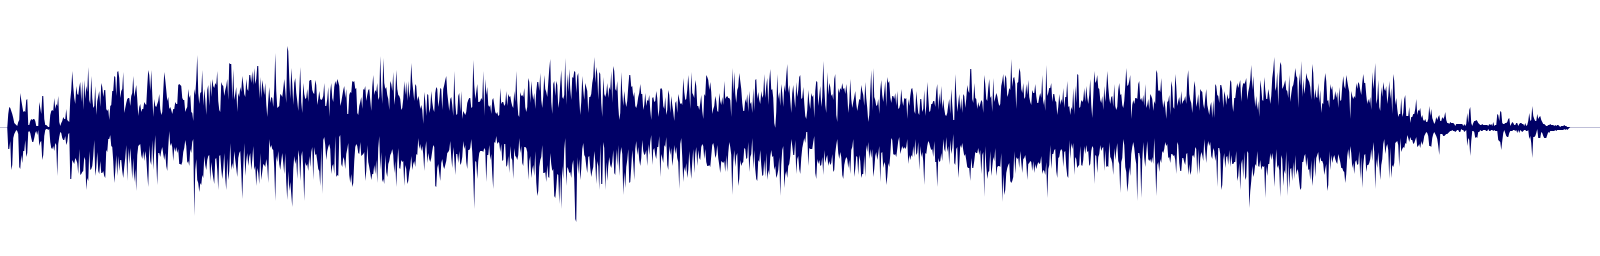 waveform of track #99061